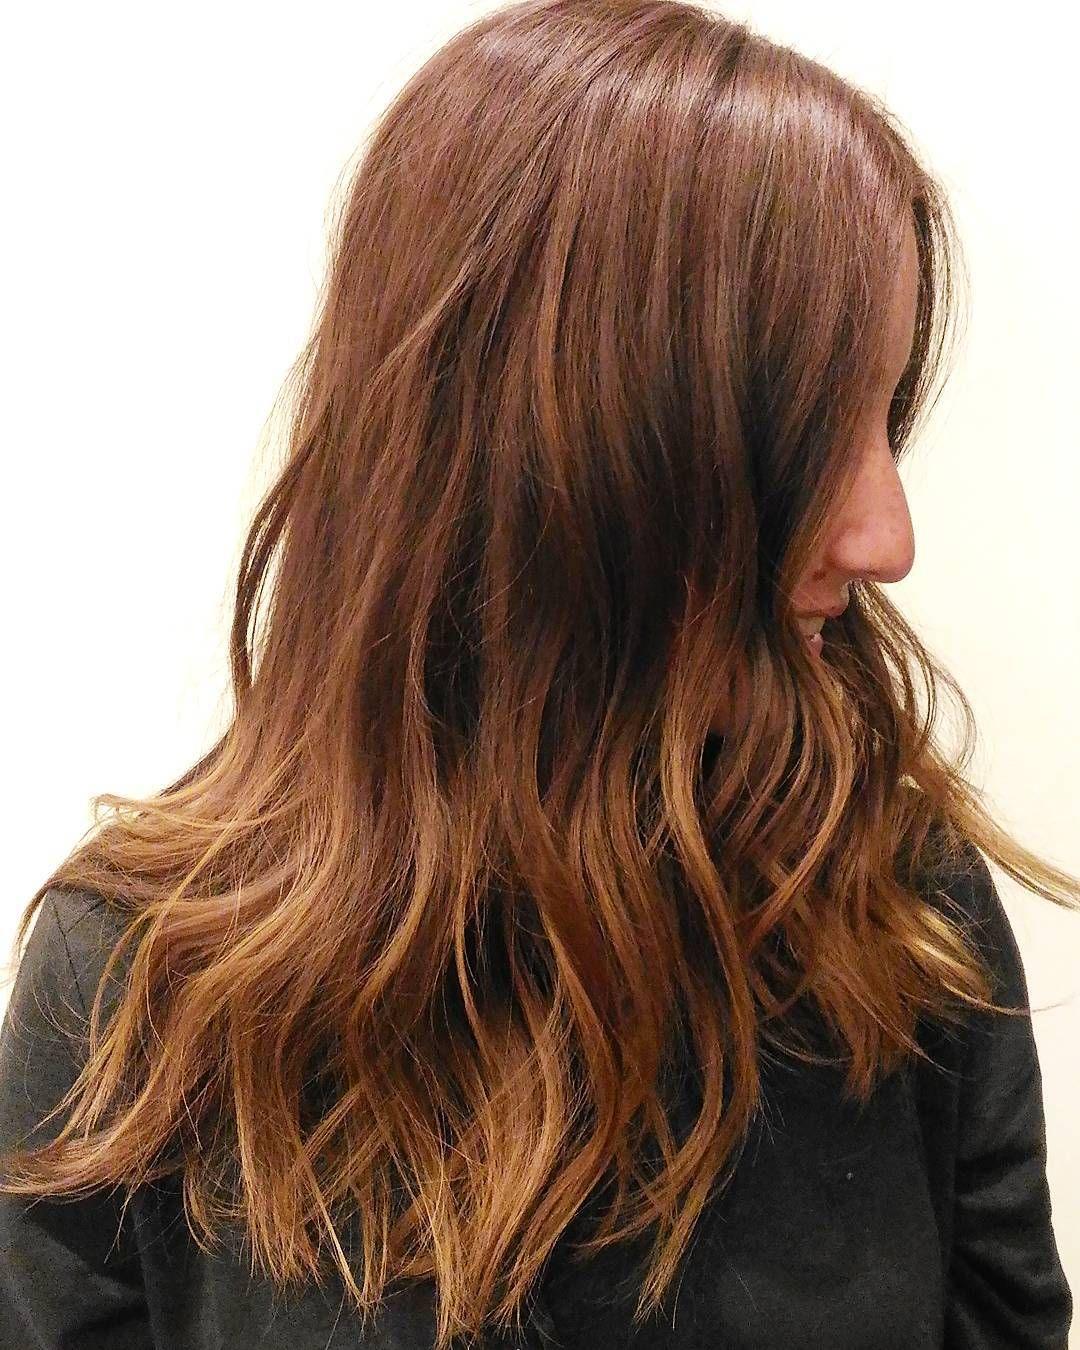 50 Different Shades Of Brown Hair Colors You Cant Resist Check